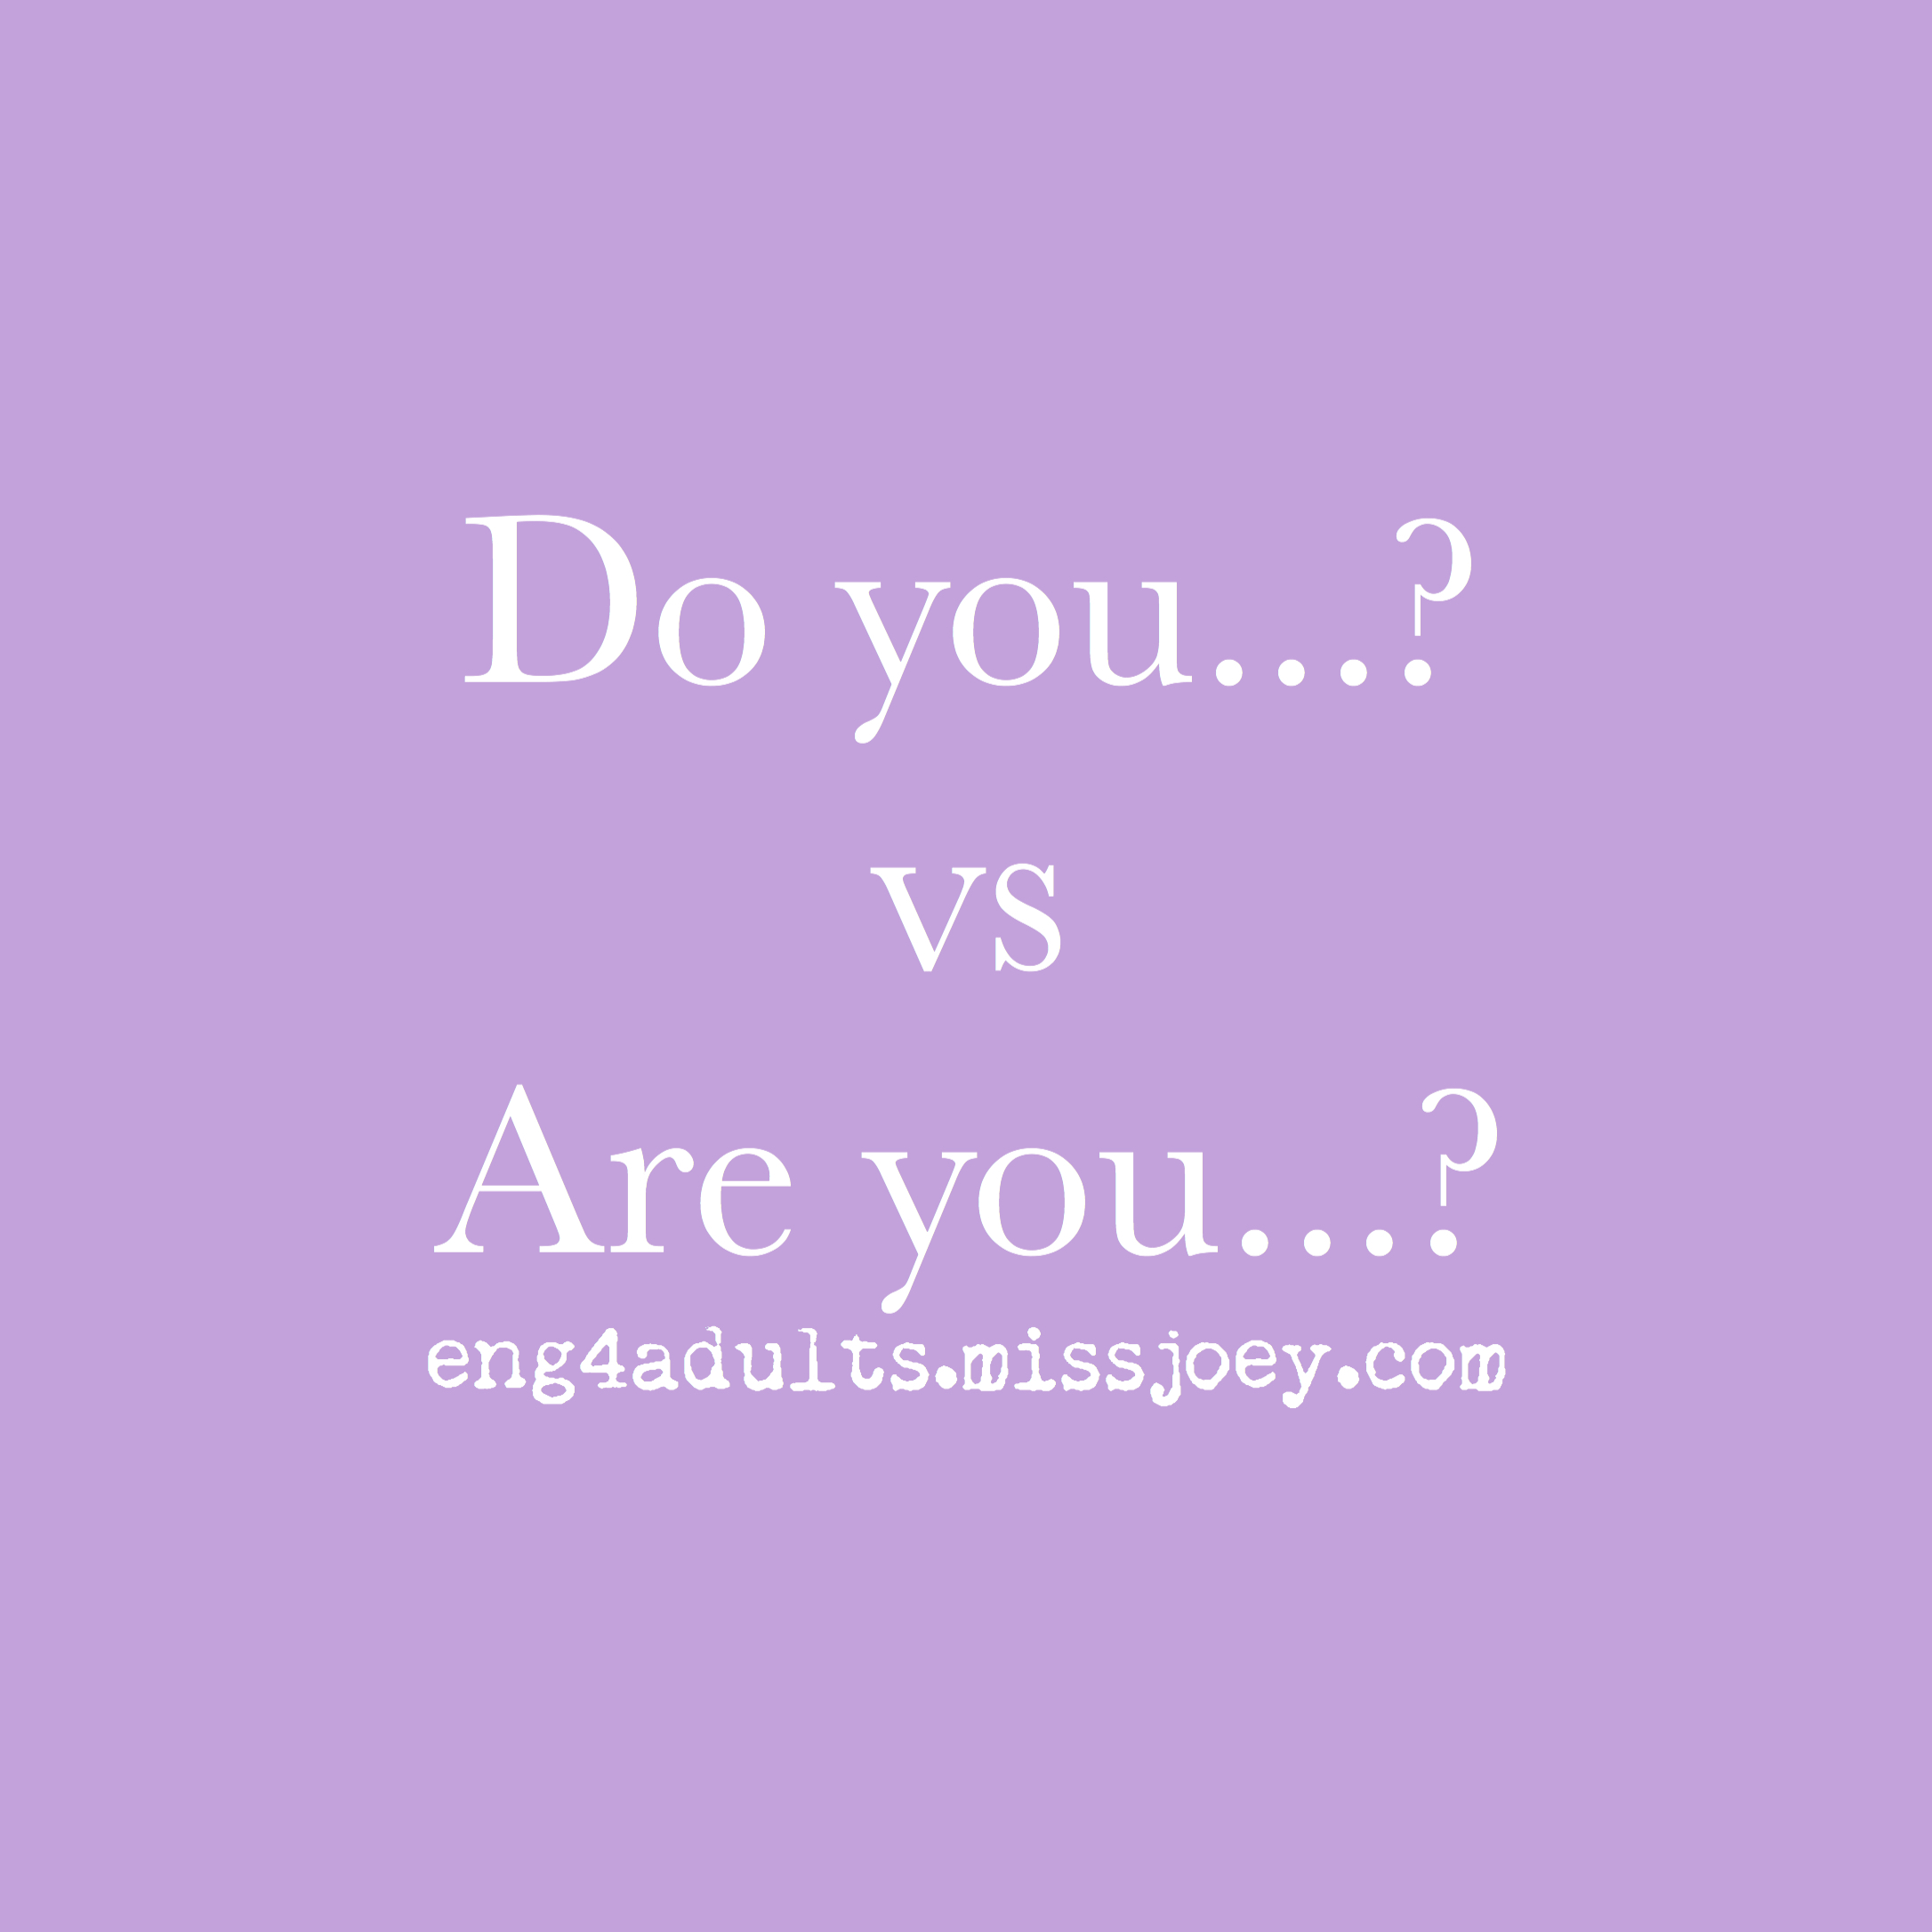 每日一字:Do you…? vs Are you…?